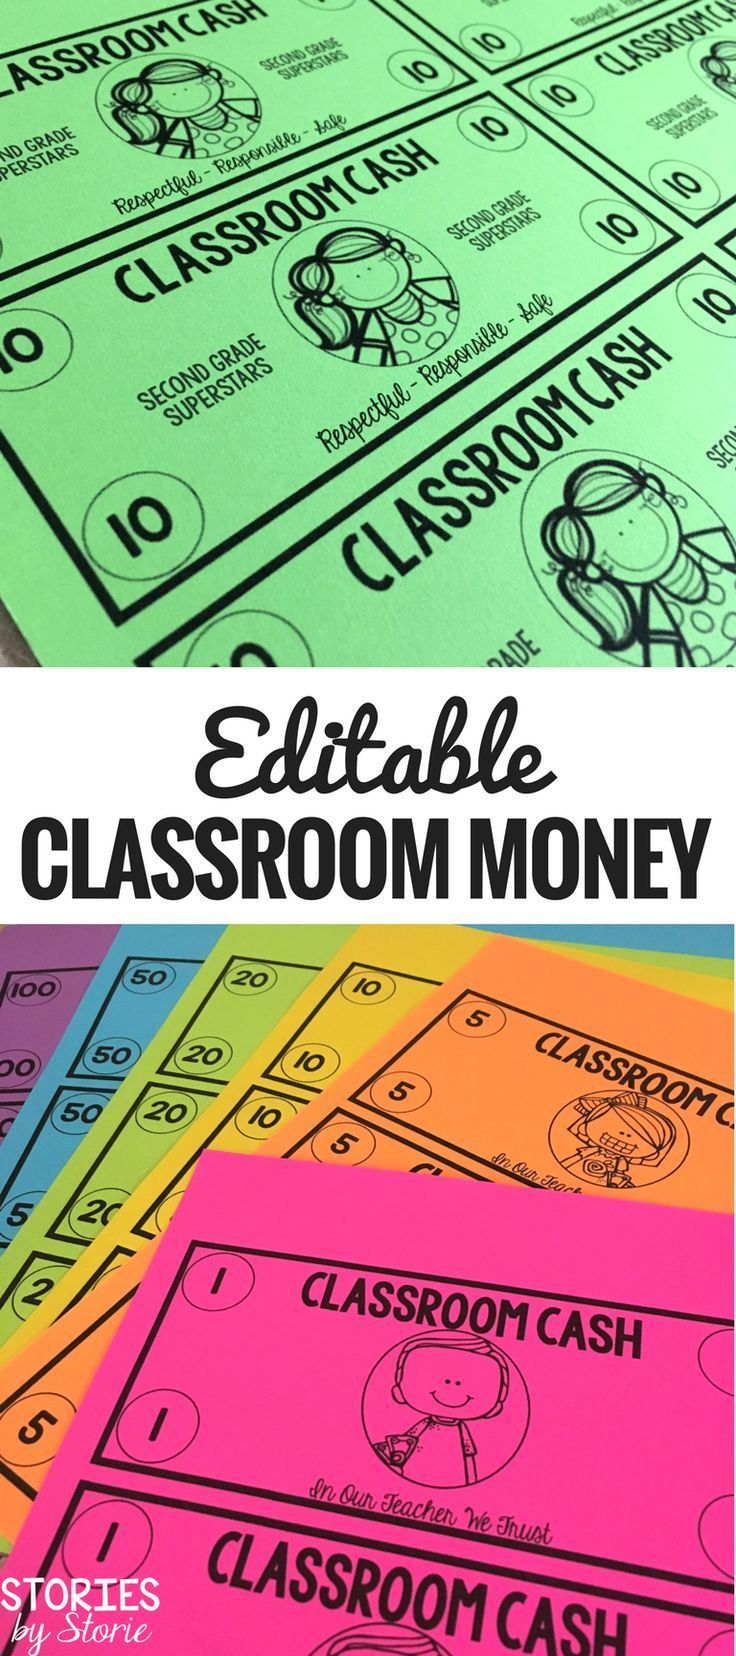 Using classroom money can be highly motivating to students and help students practice important math skills. If you're ready to use money in the classroom this year, take a look at this set of editable classroom cash. You can personalize the text to fit your classroom needs.